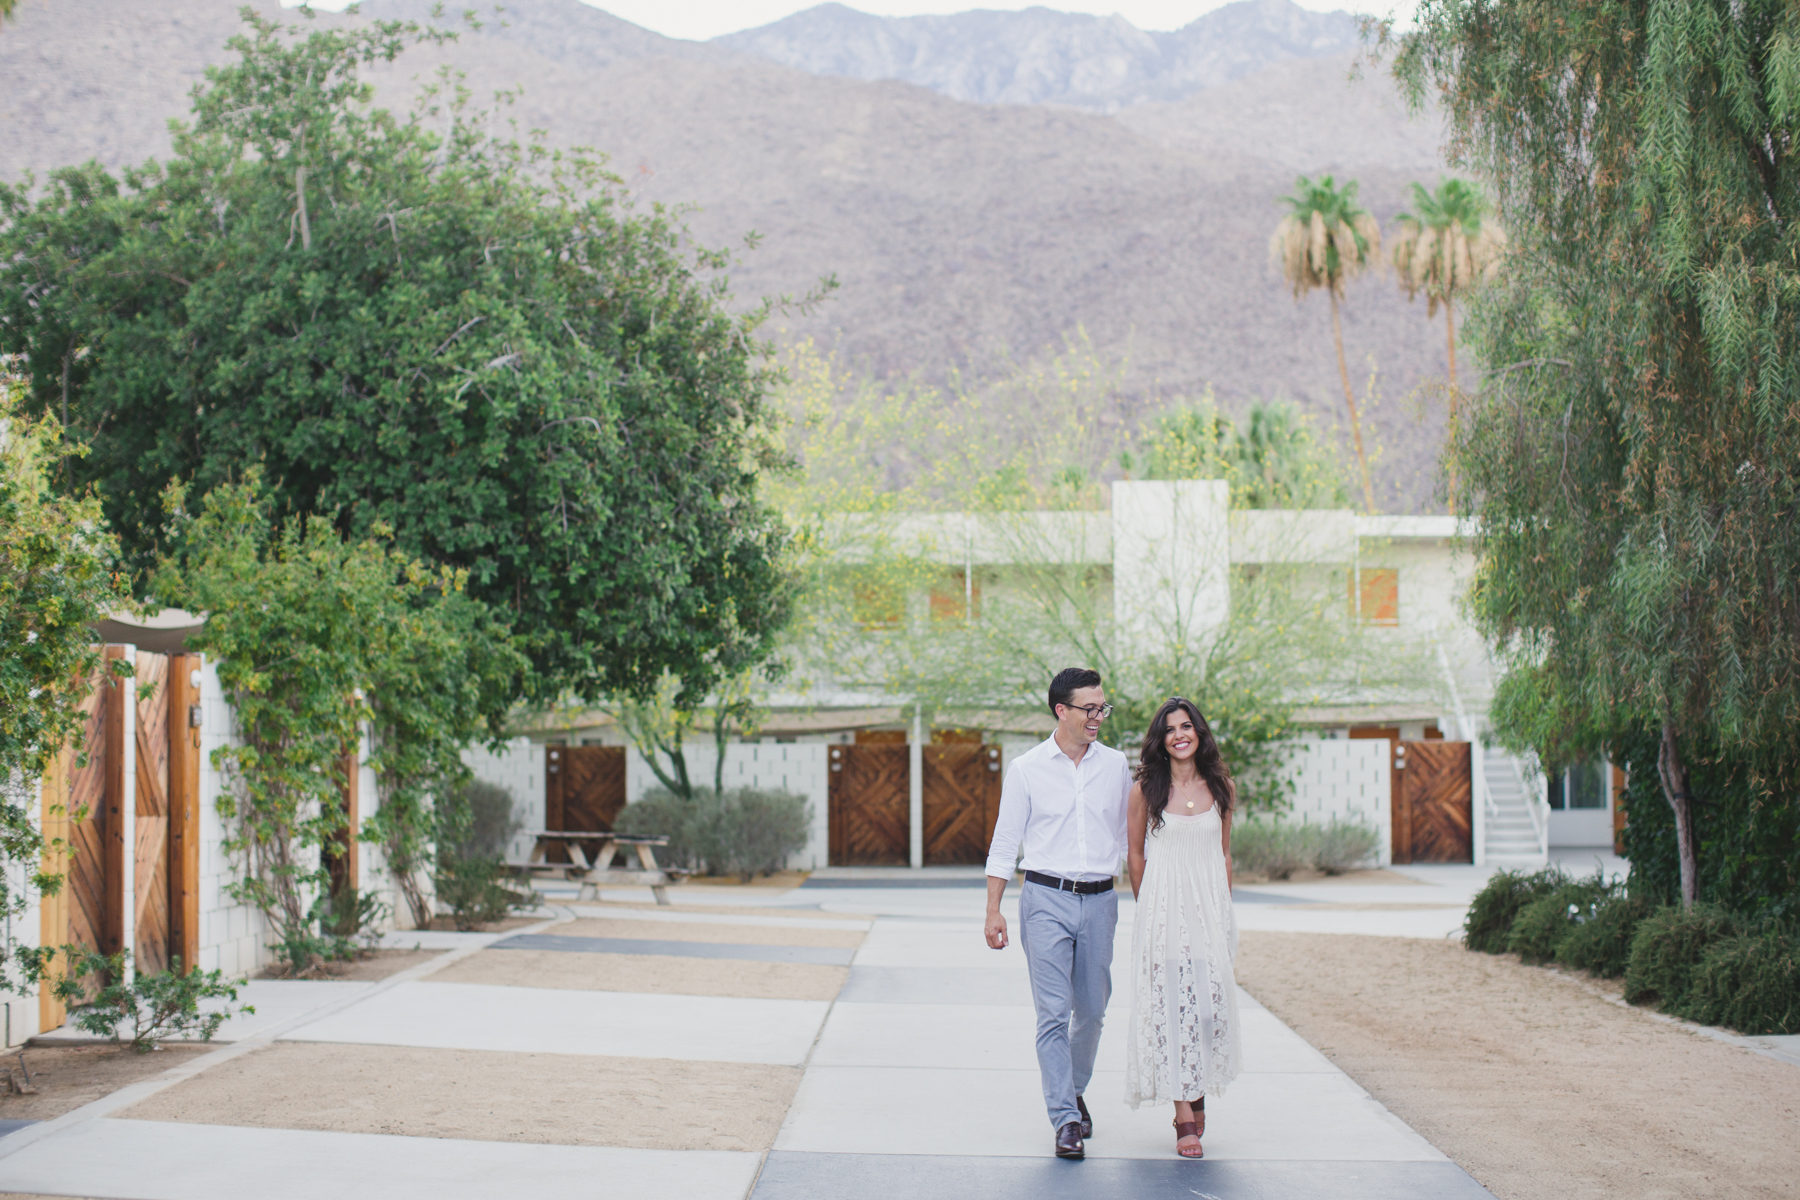 All_Days_Wonder_Palm_Springs_Engagement-52.jpg